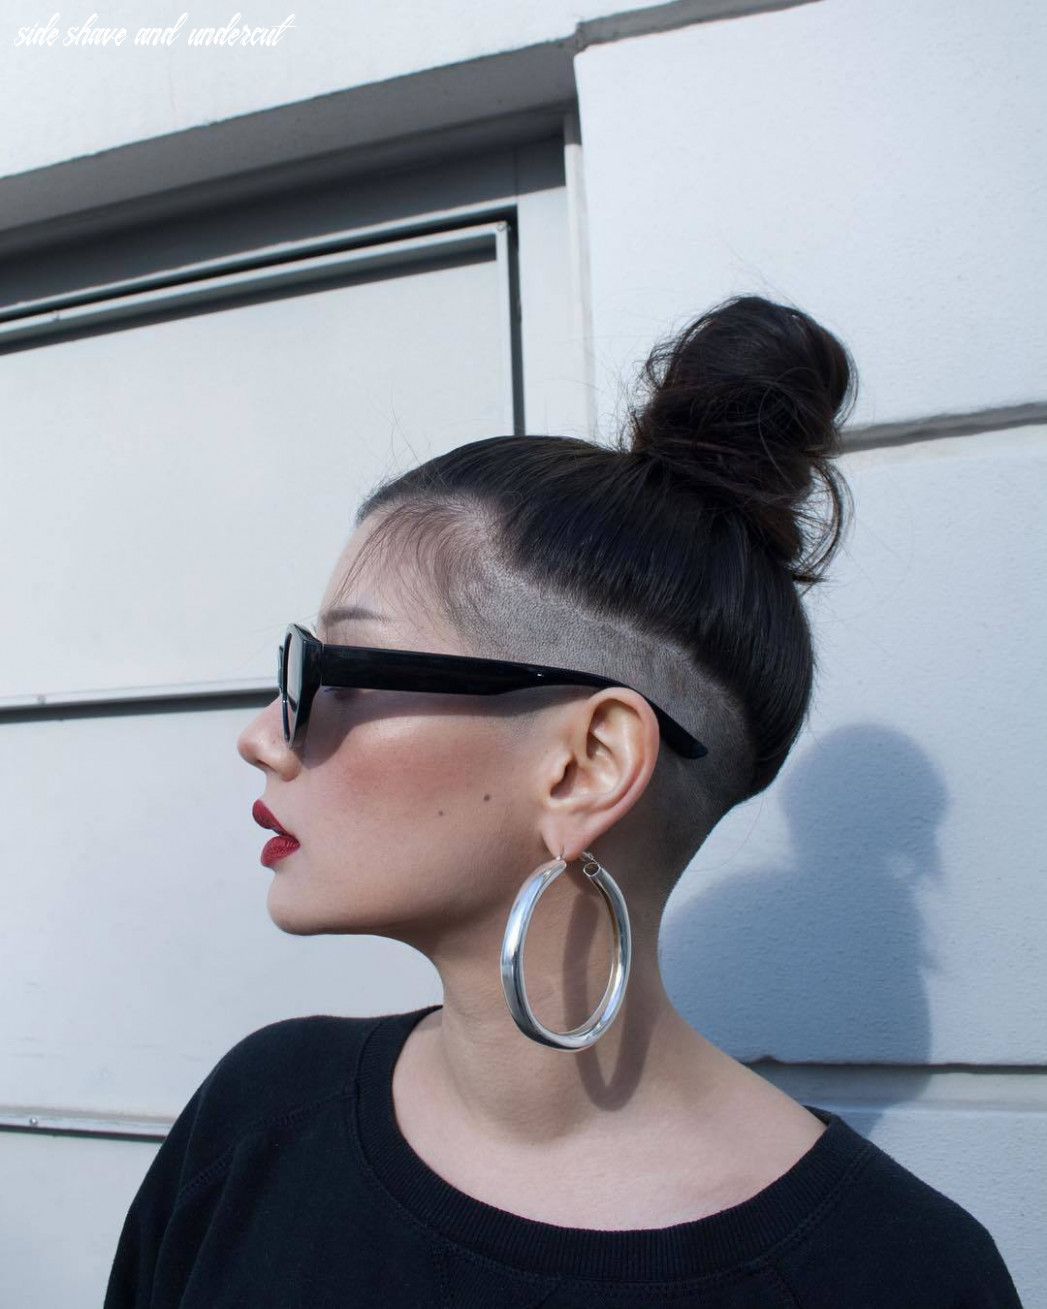 10 bold shaved hairstyles for women   shaved hair designs side shave and undercut